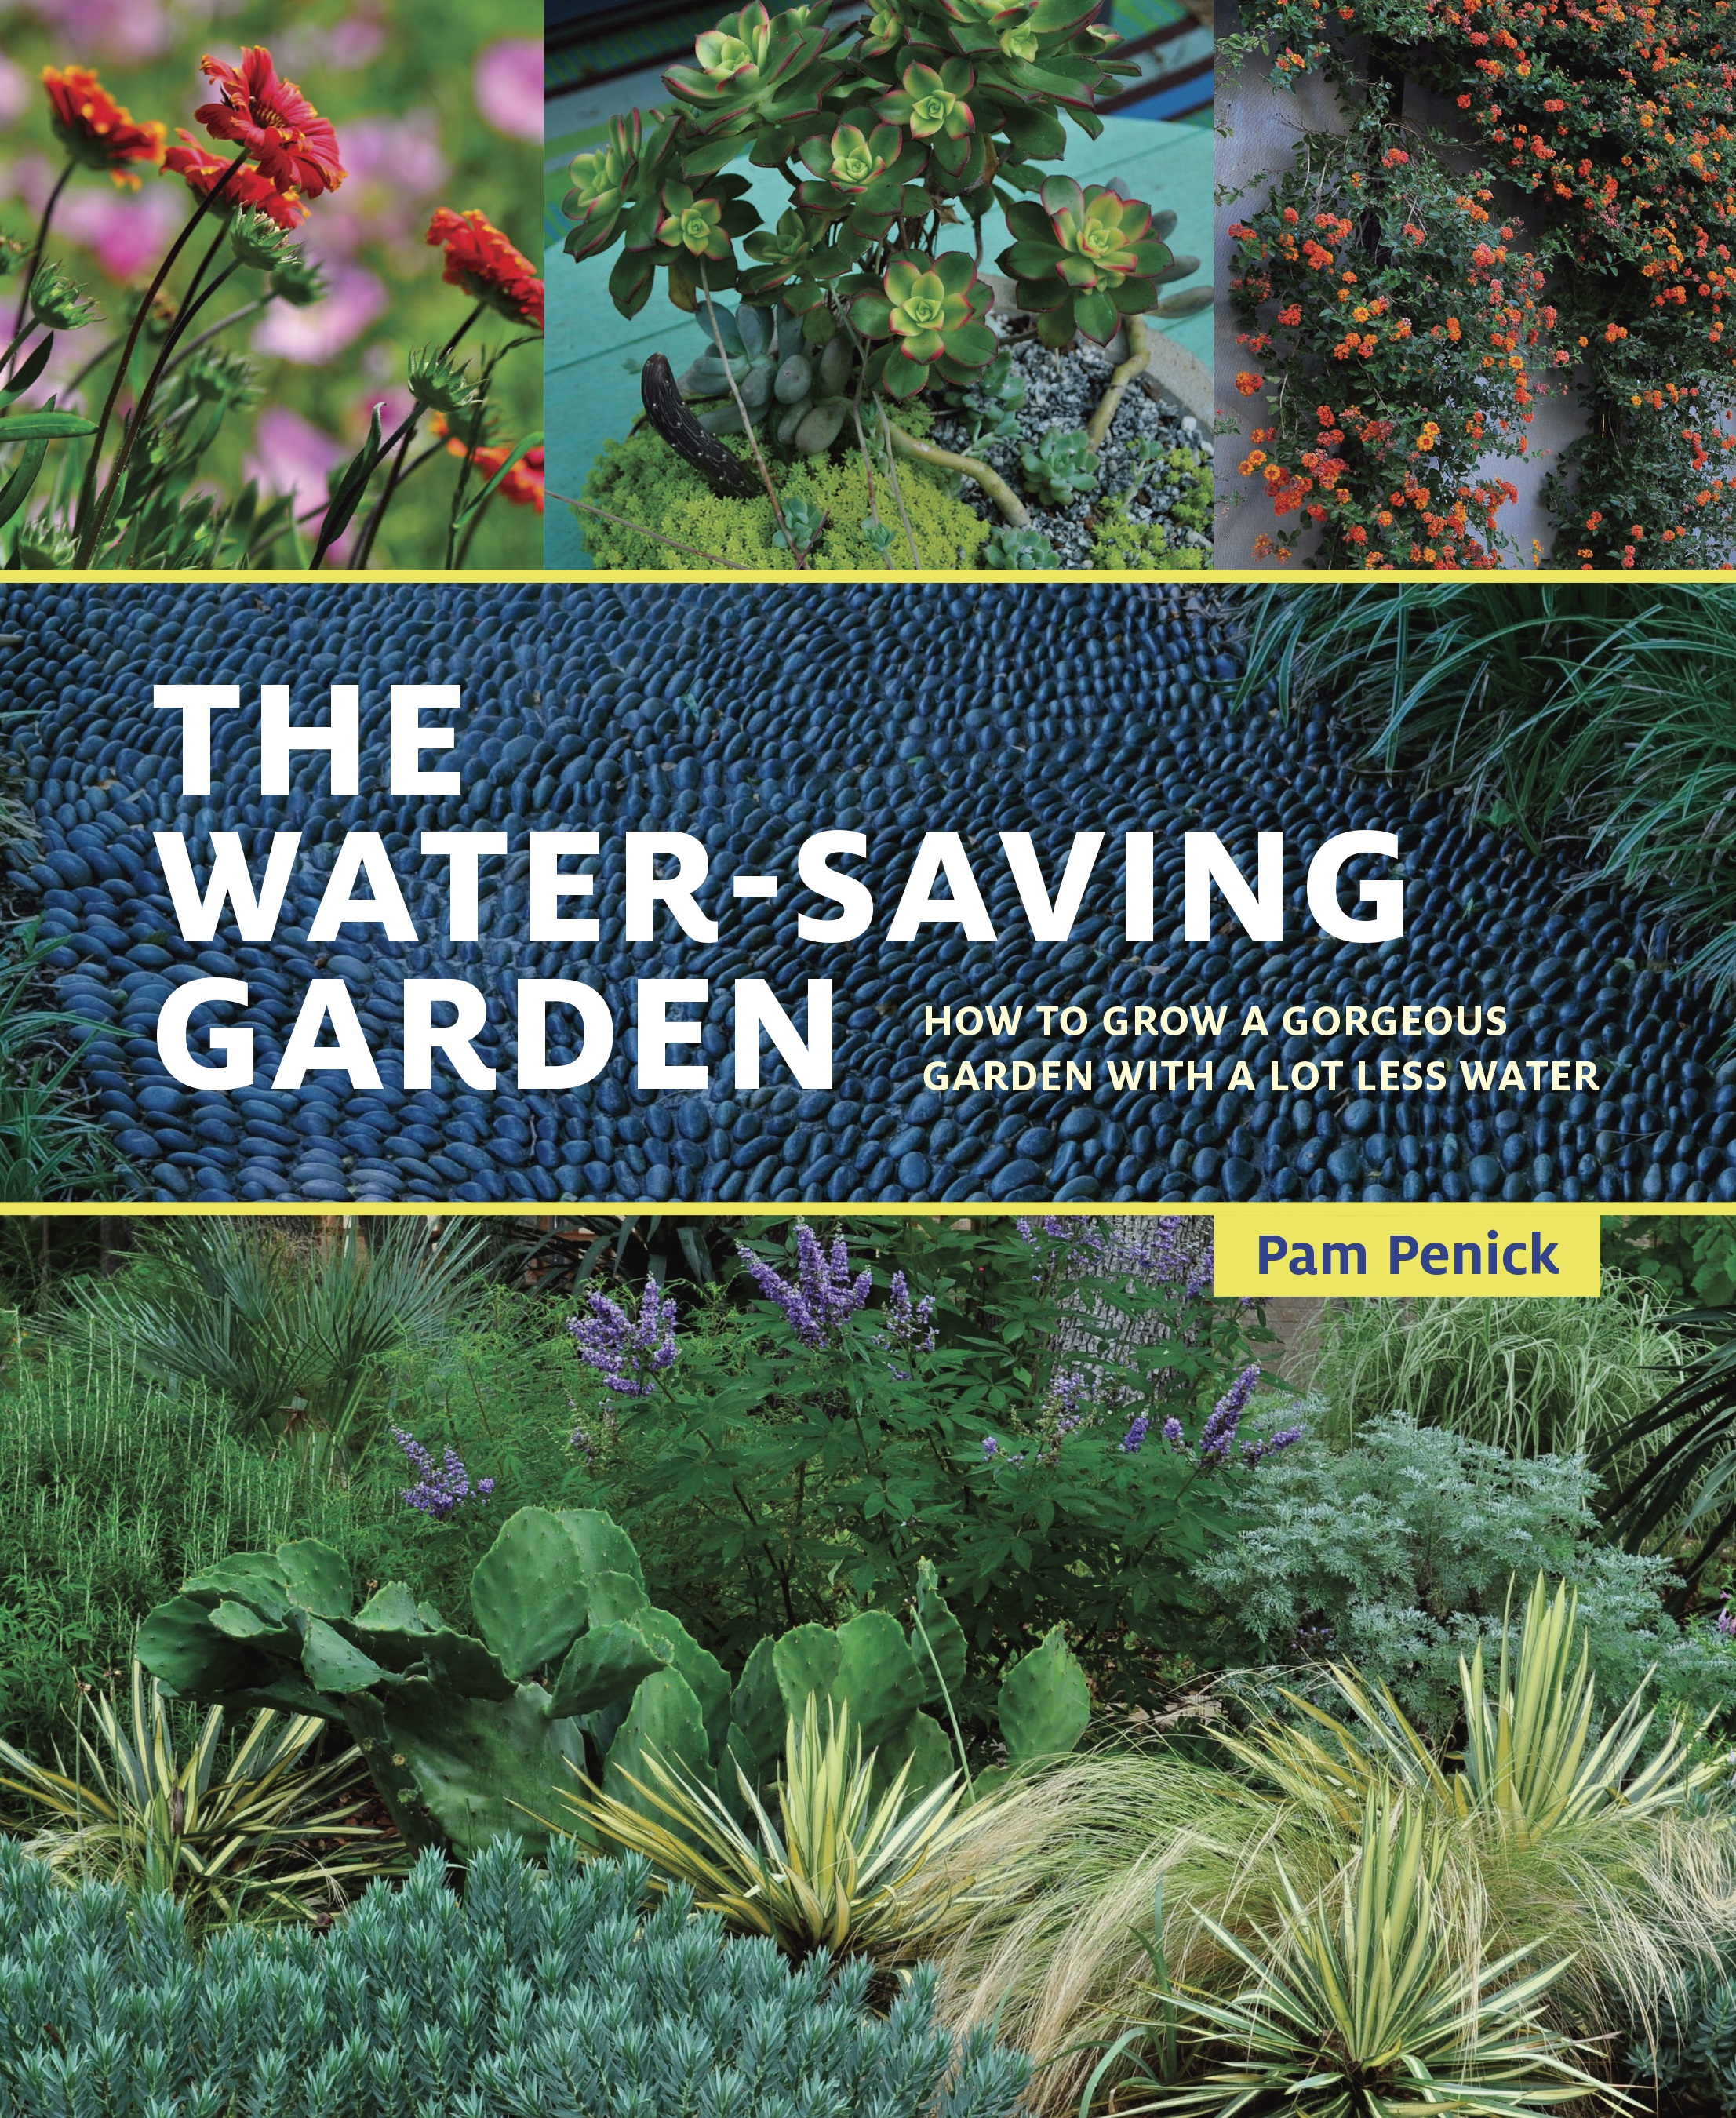 How to Grow a Gorgeous Garden Using Less Water with Pam Penick